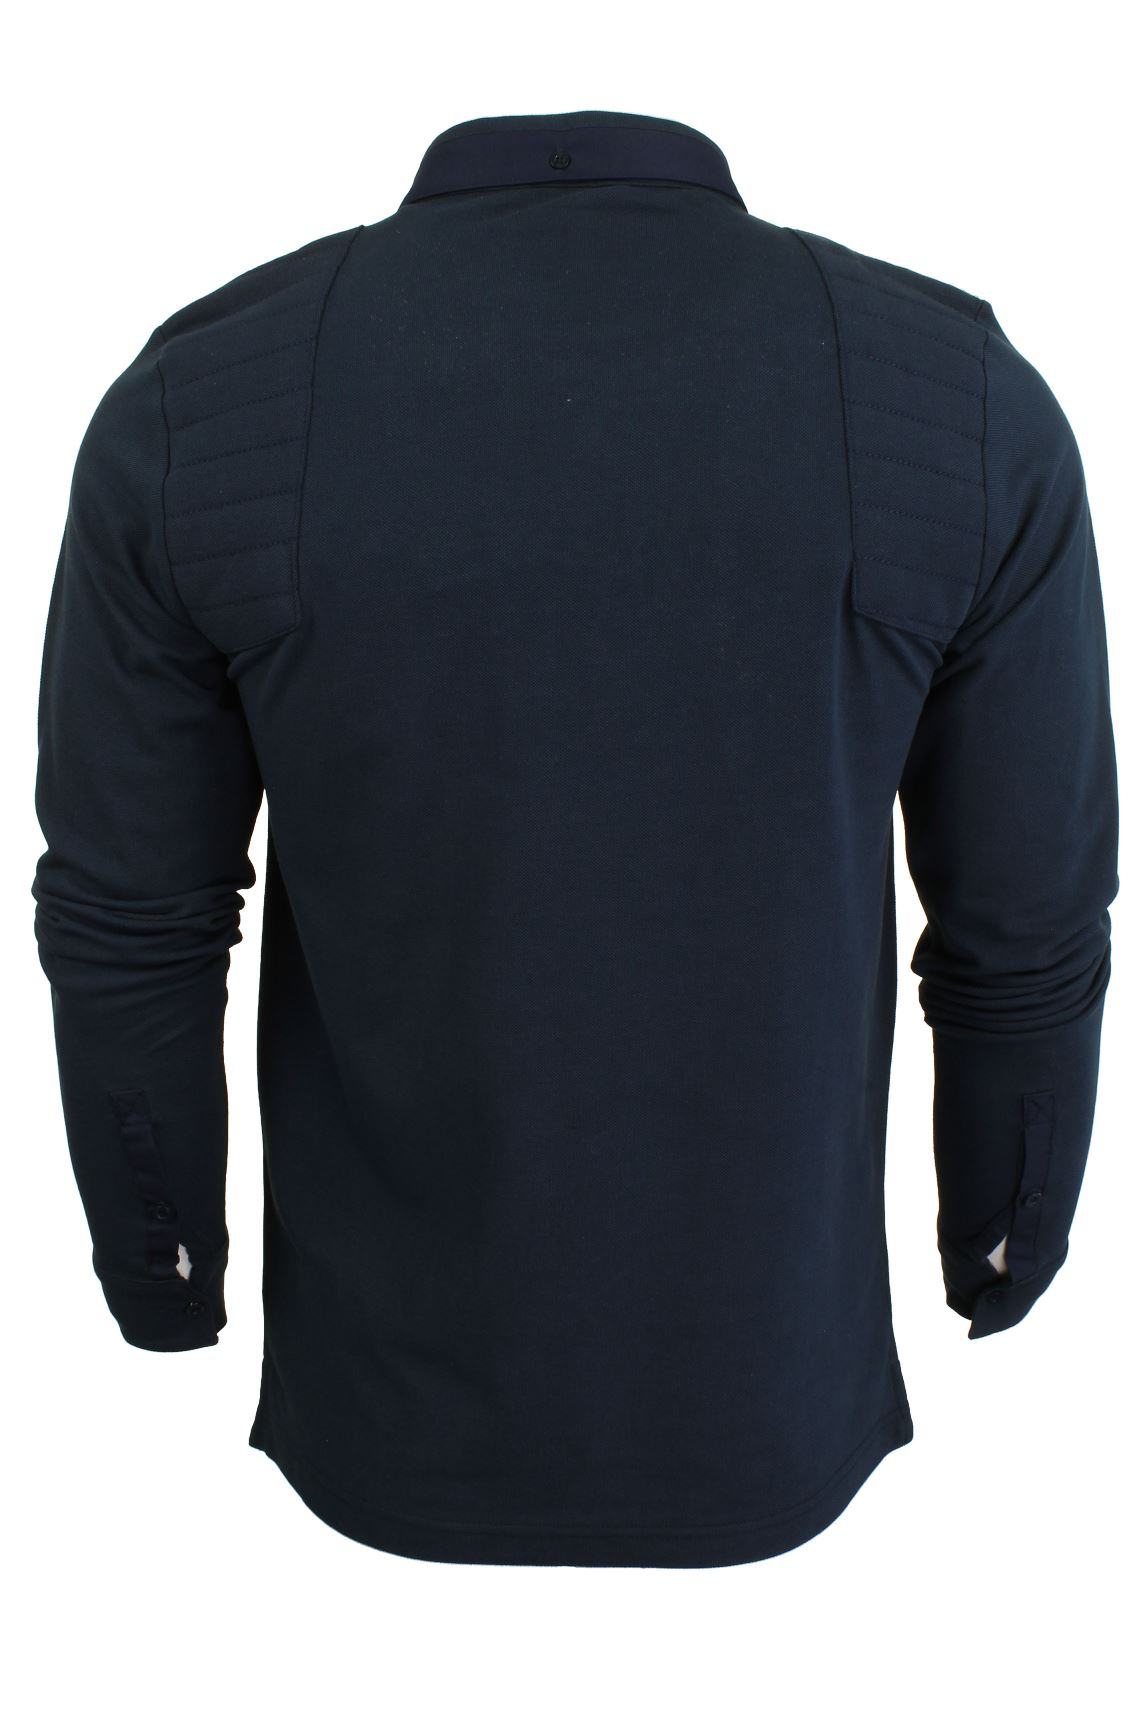 Mens-Short-Sleeved-Polo-Shirt-from-the-Blackout-Collection-by-Voi-Jeans thumbnail 4